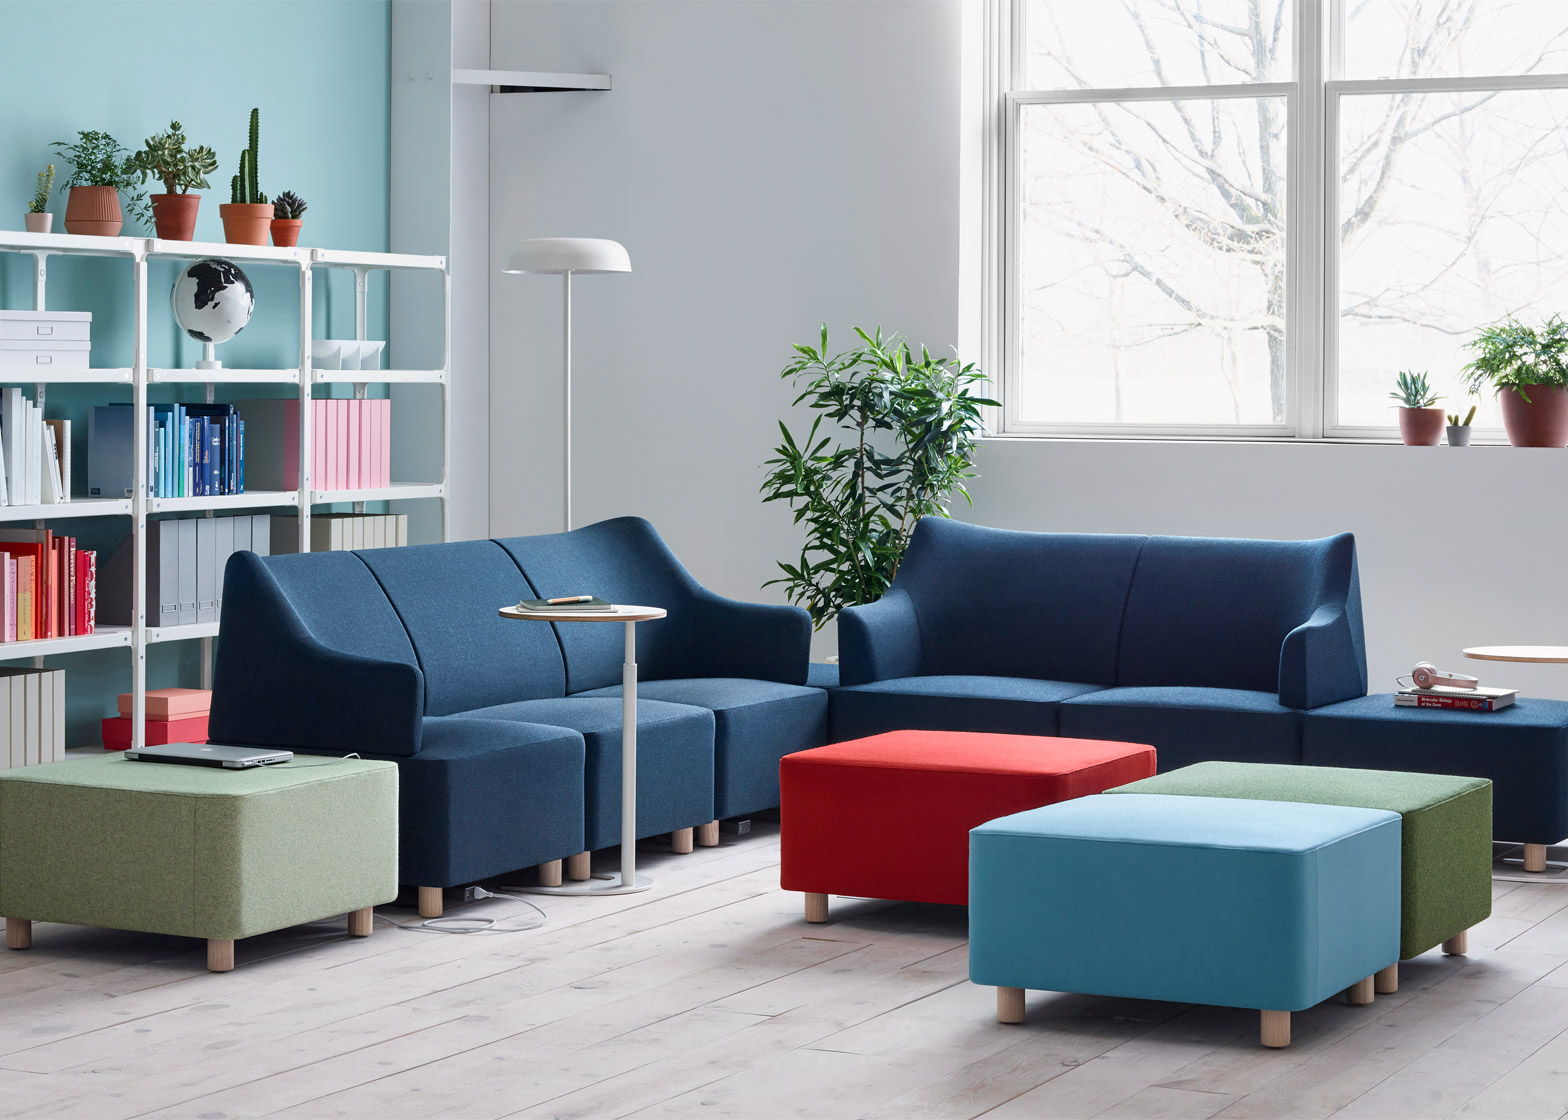 Beautiful  of Plex modular lounge system designed by Industrial Facility for Herman Miller shown at NeoCon